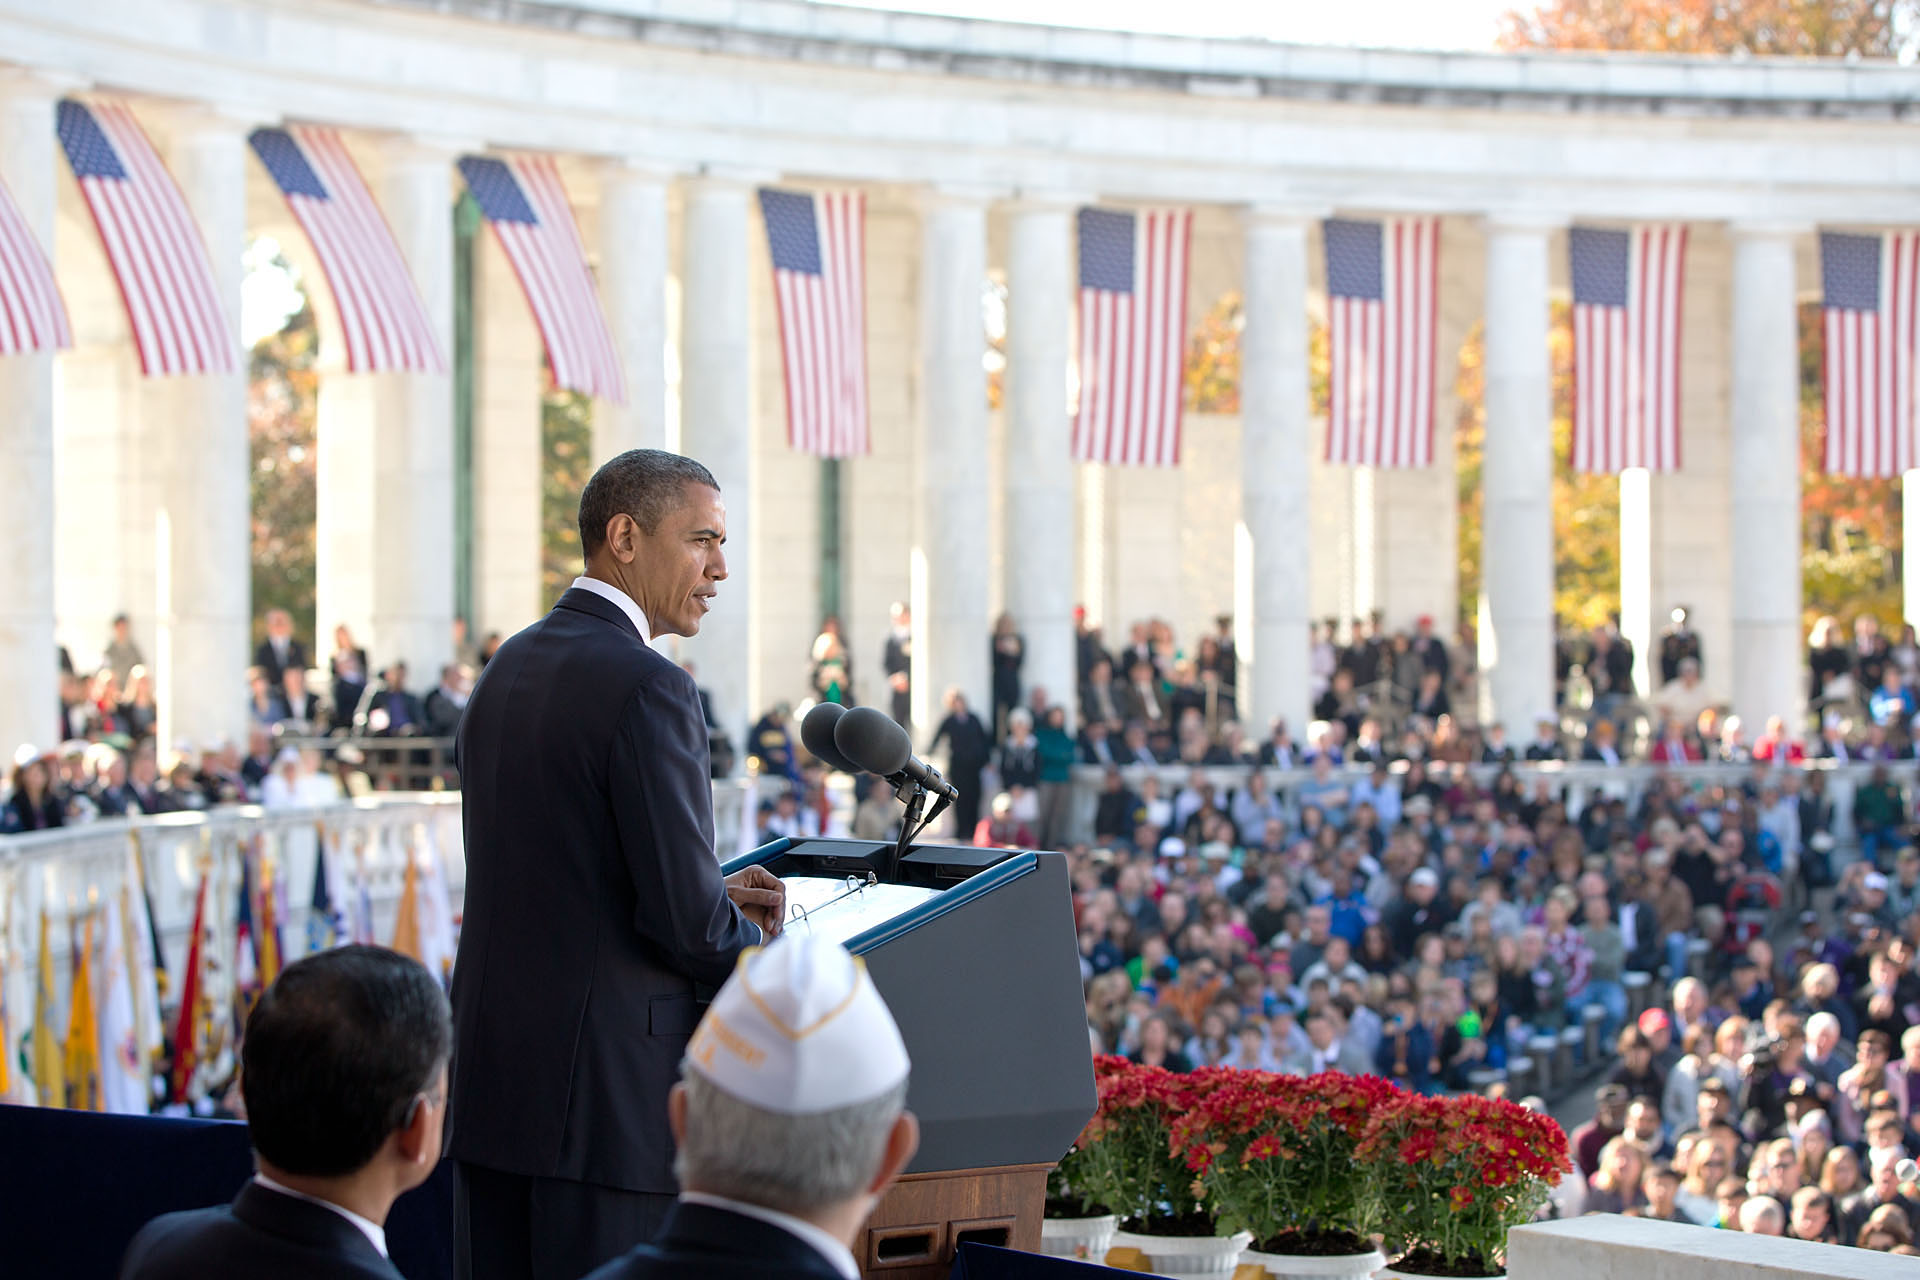 President Obama at Arlington National Cemetery